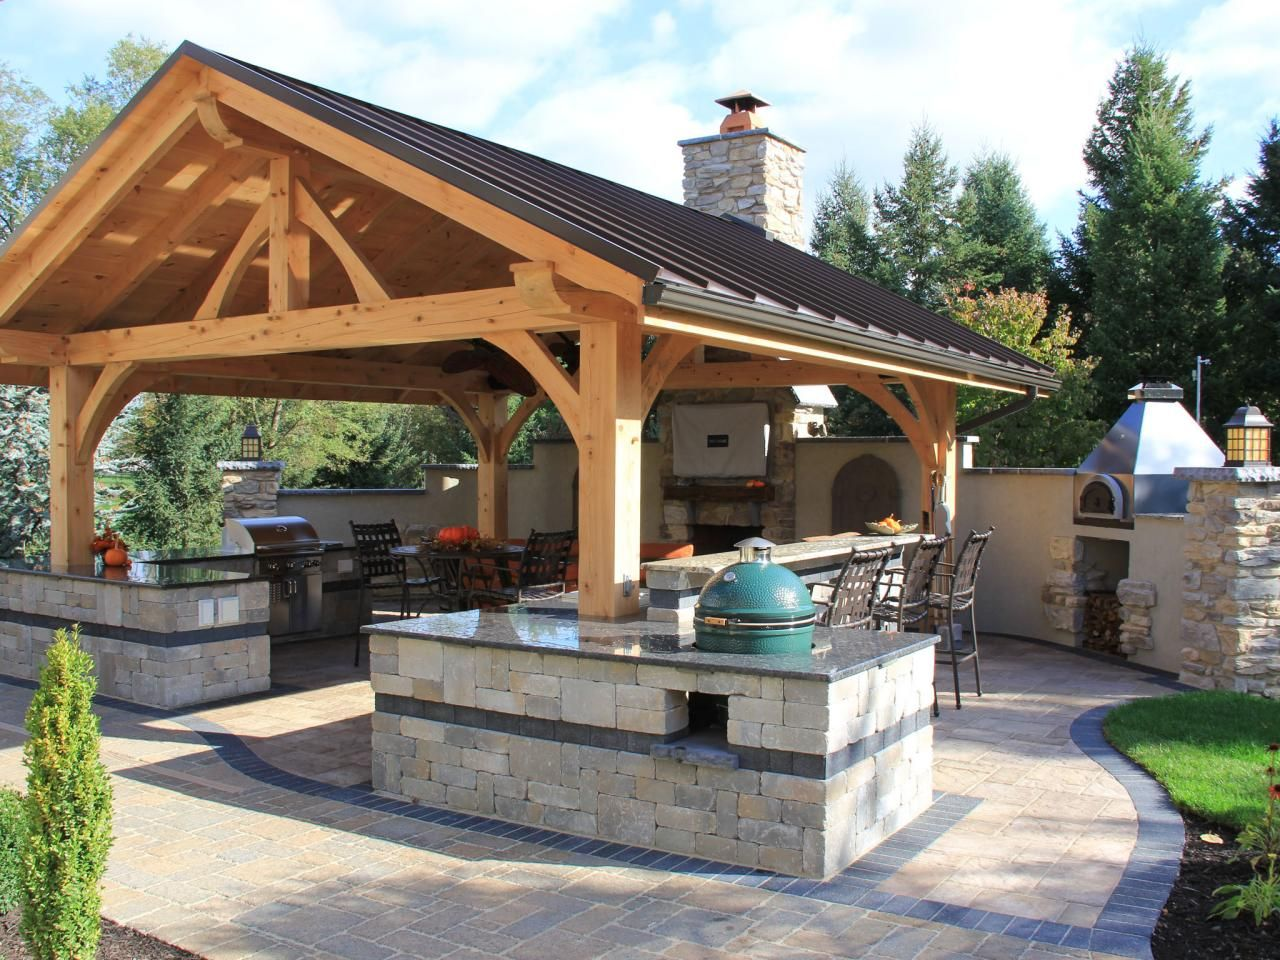 rustic covered outdoor kitchen with bar hgtv outdoor spaces outdoor kitchen patio outdoor. Black Bedroom Furniture Sets. Home Design Ideas